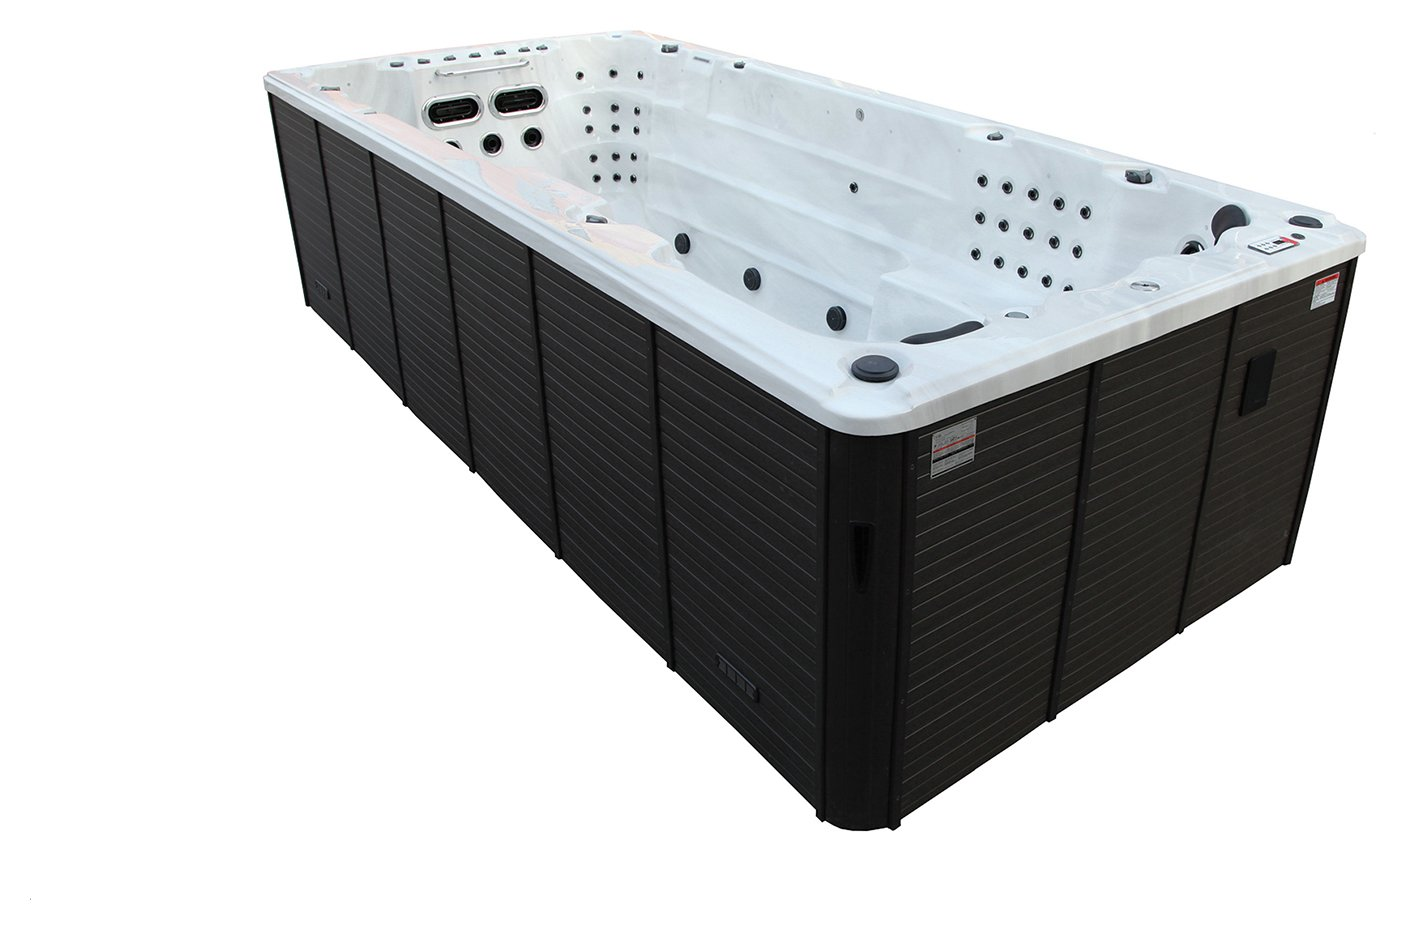 Canadian Spa Co. St Lawrence Deluxe 16ft 71 Jet Swim Hot Tub from Canadian Spa Company